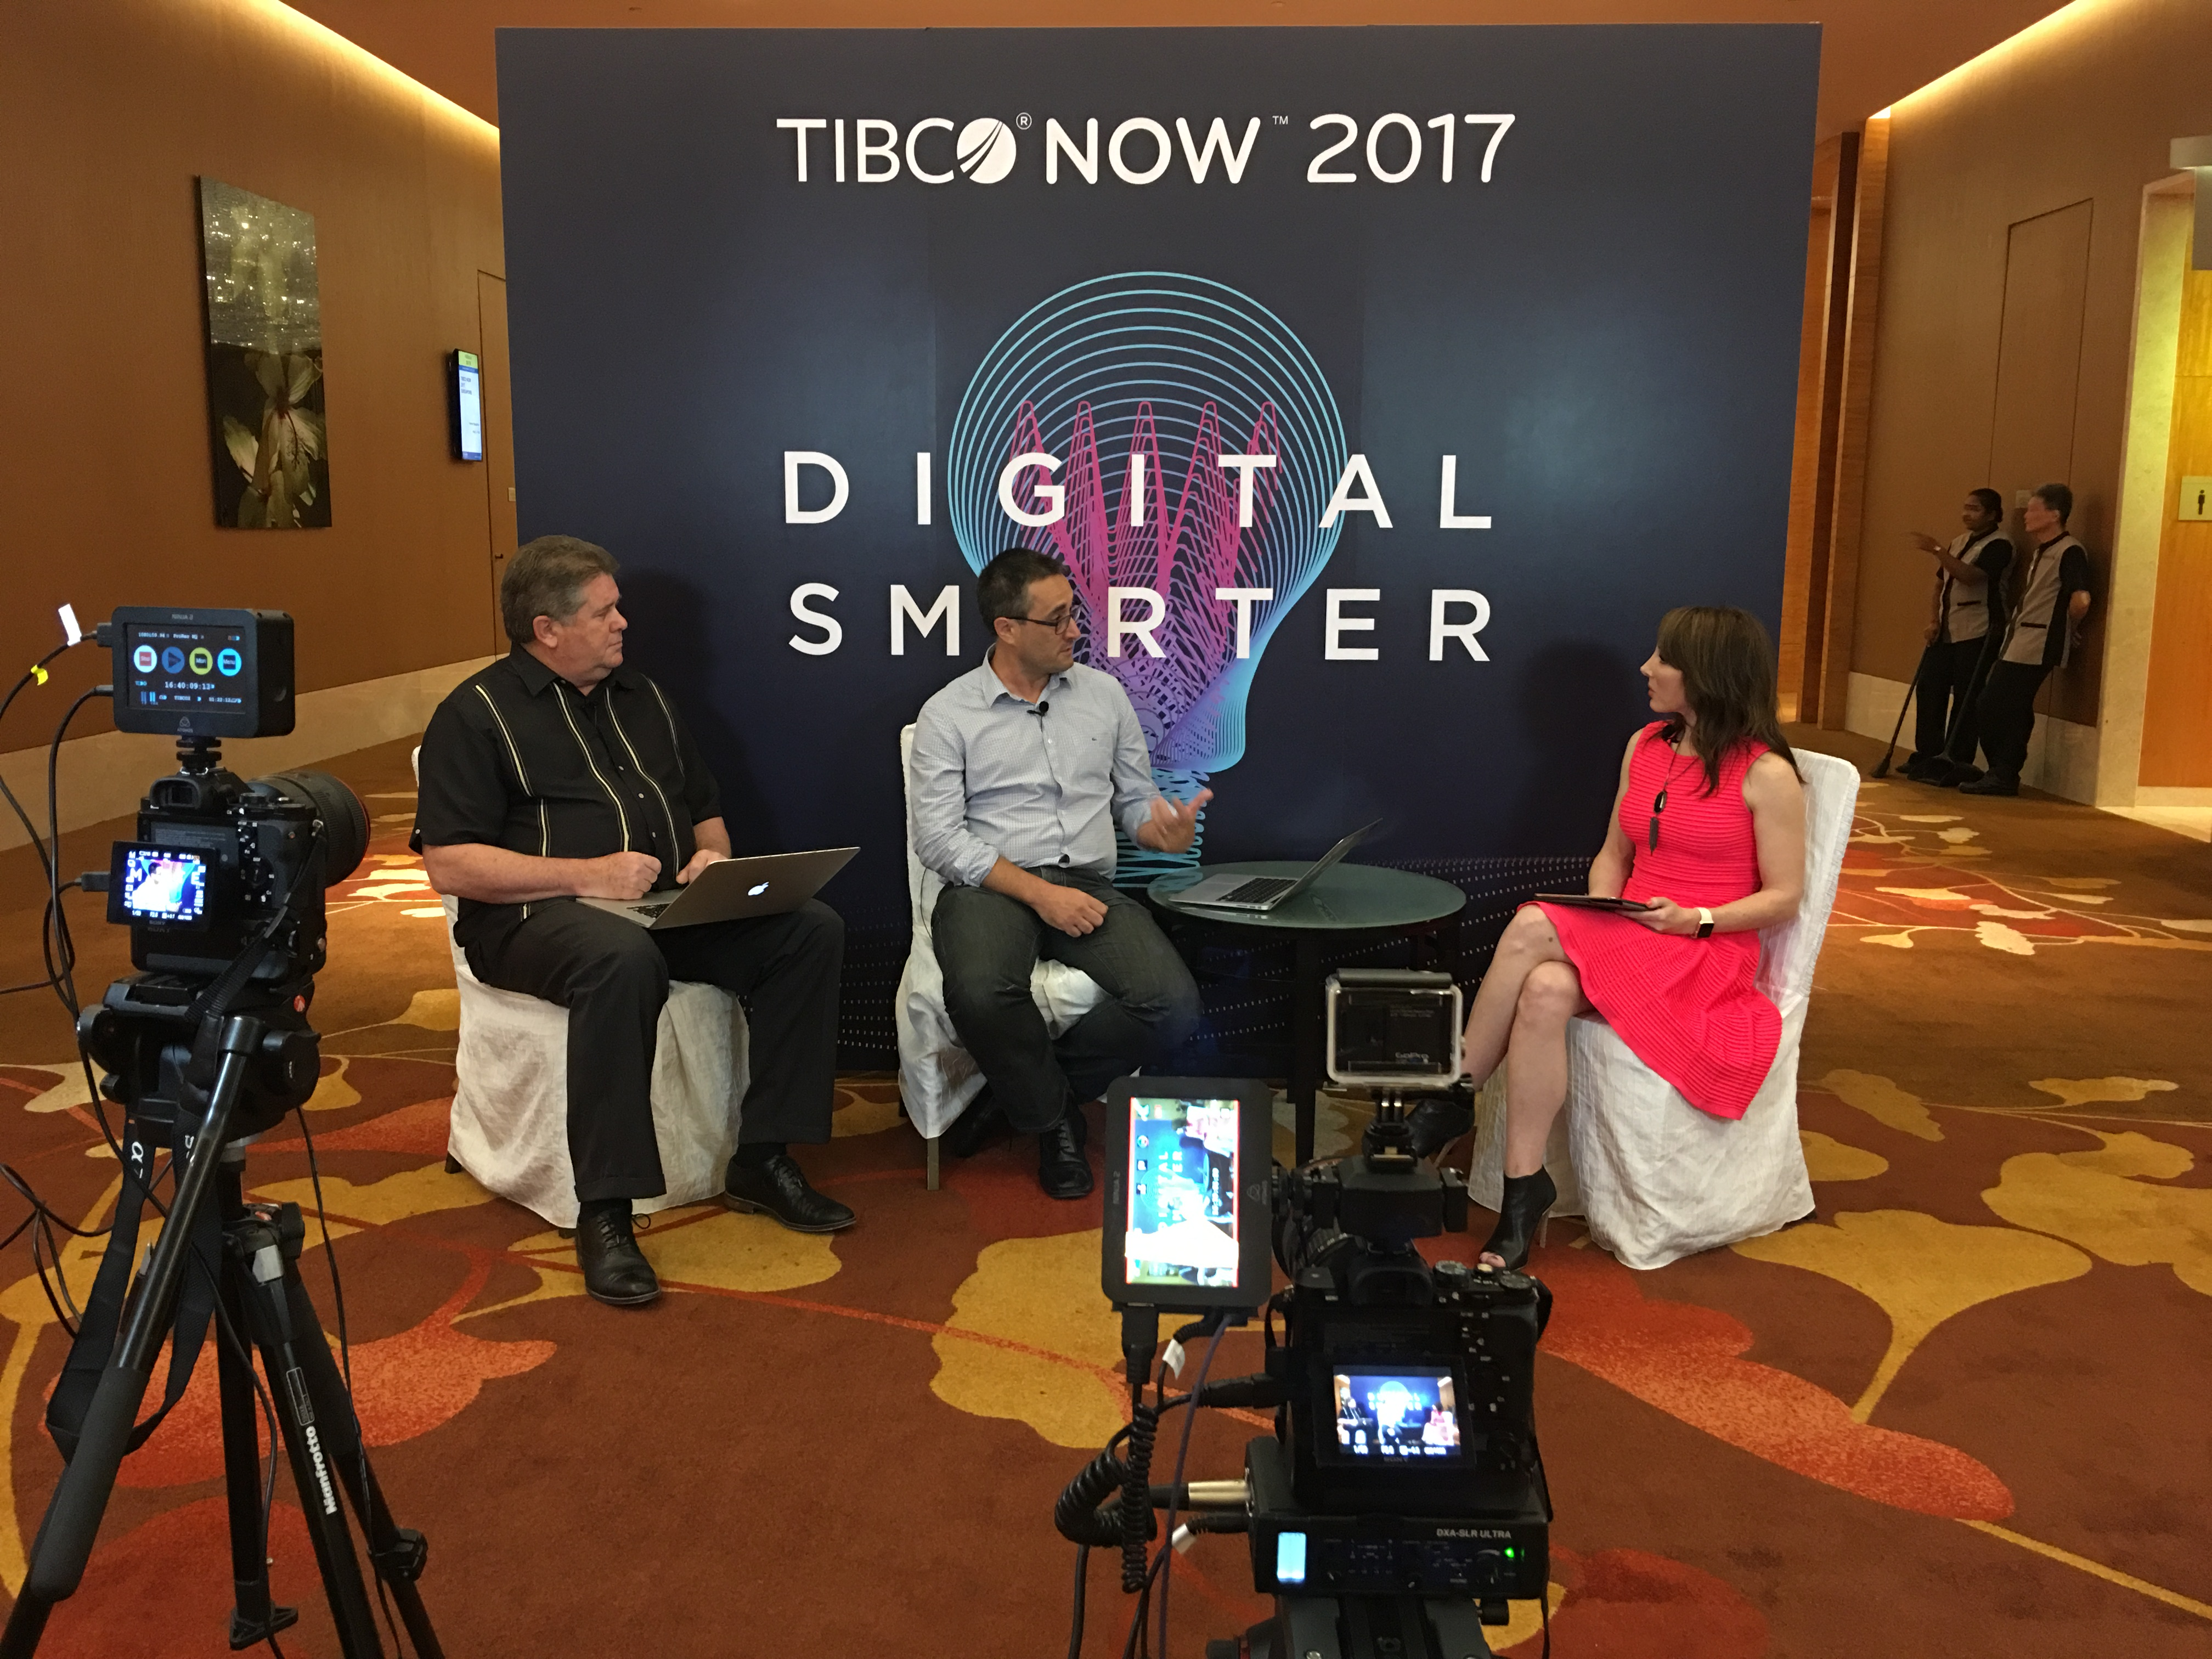 TIBCO NOW Singapore—Event Roundup